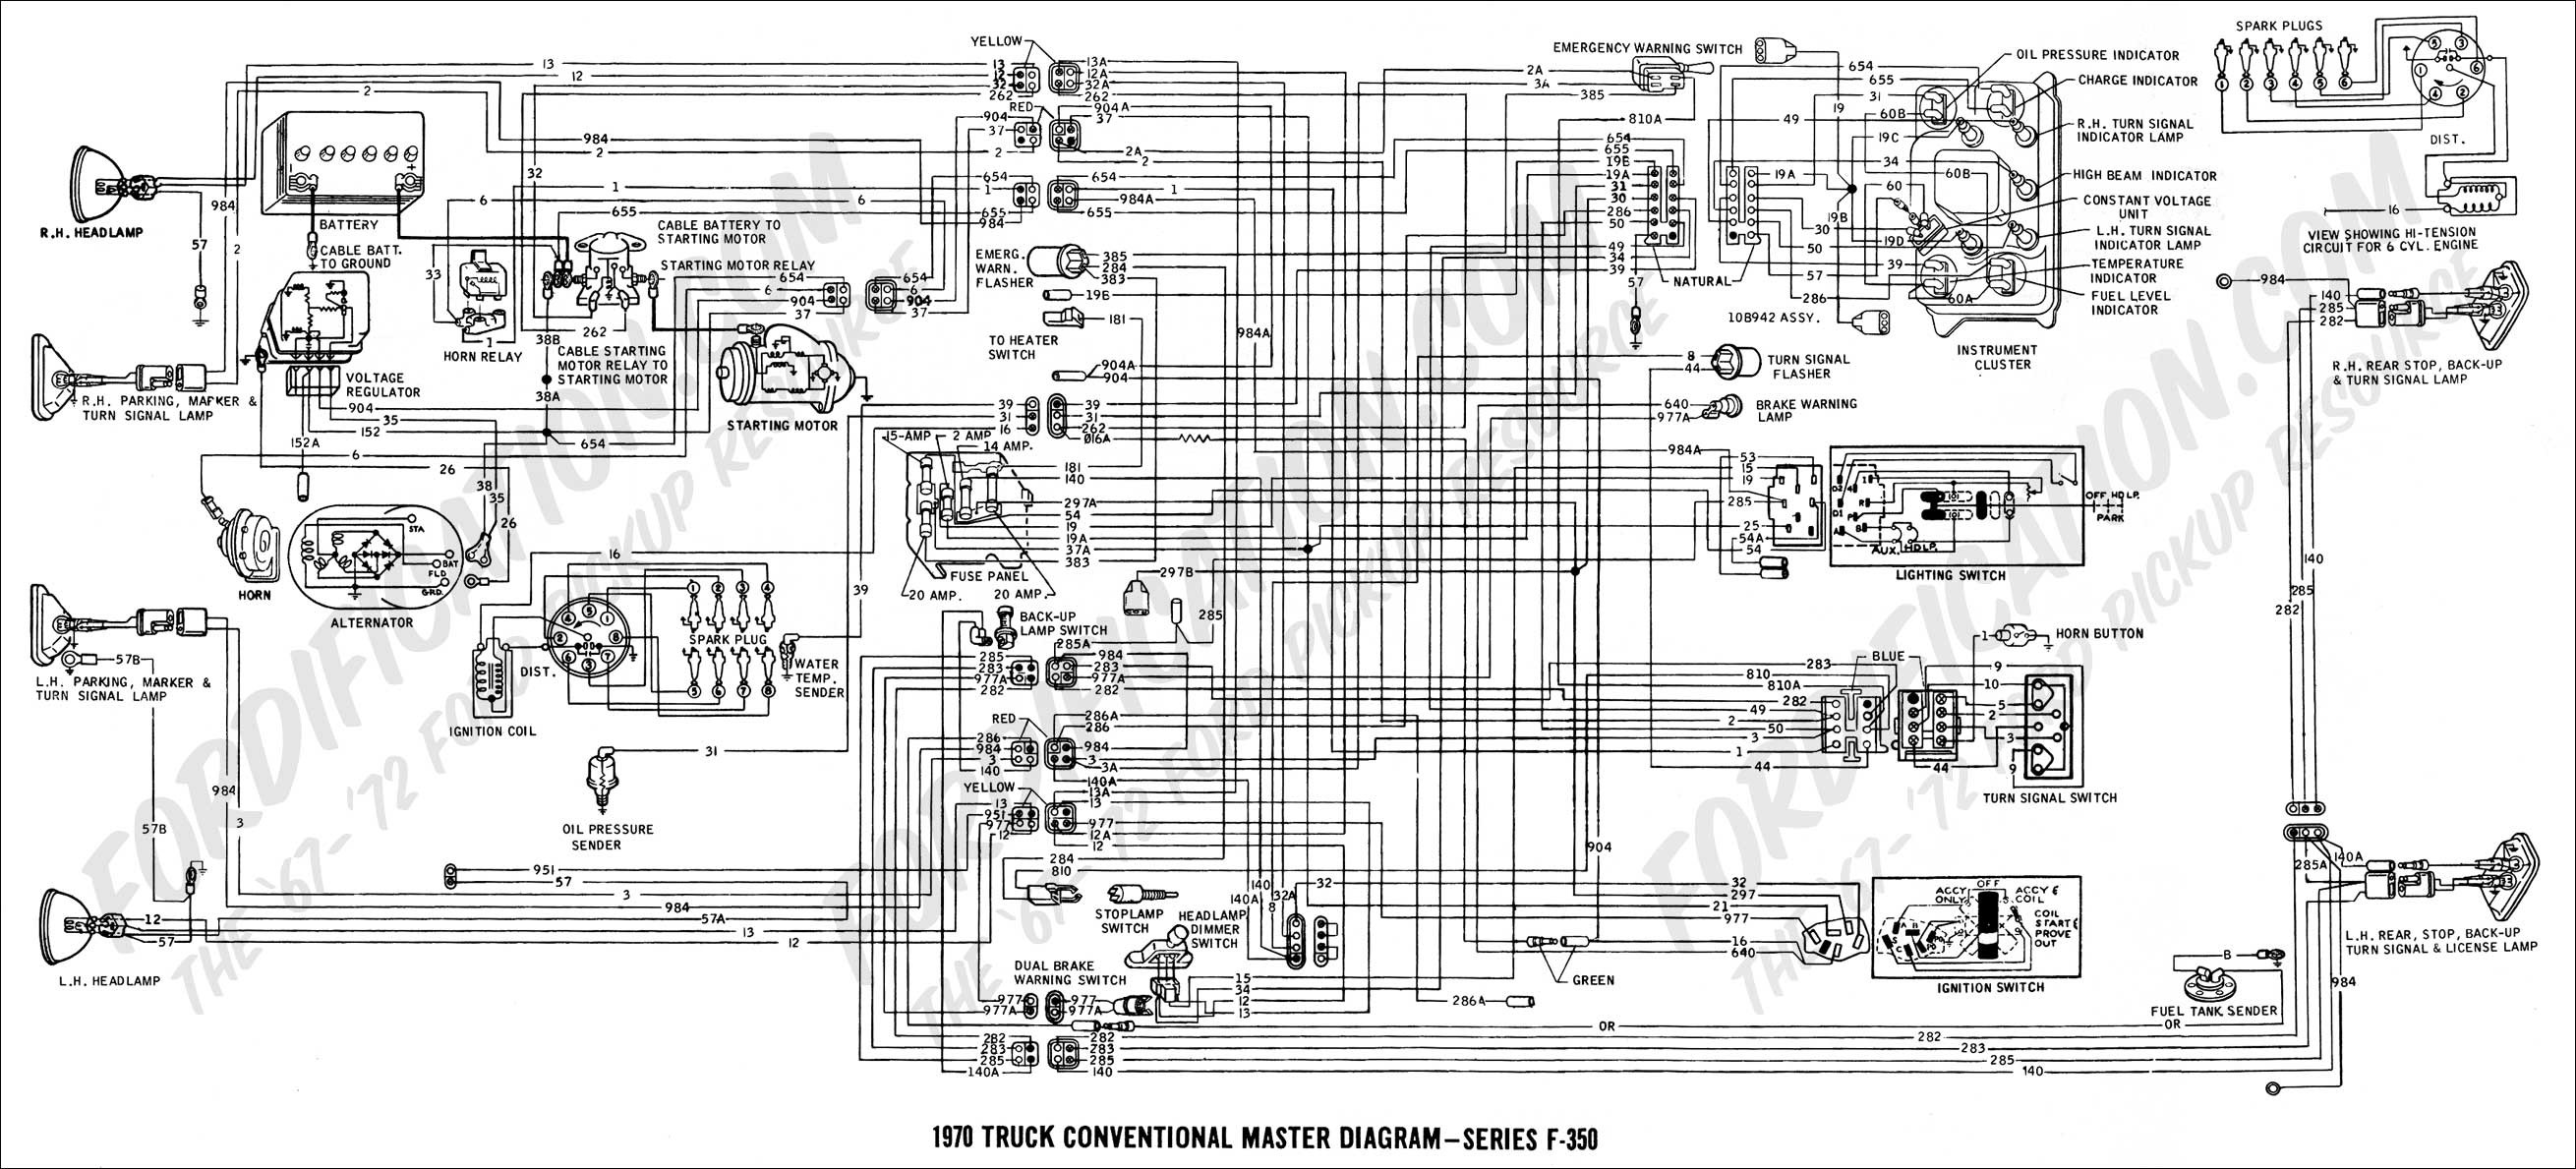 wiring diagram for 1985 ford f350 circuit diagram symbols u2022 rh stripgore com 1989 Ford F -150 Wiring Diagram 1985 Ford F -150 Wiring Diagram